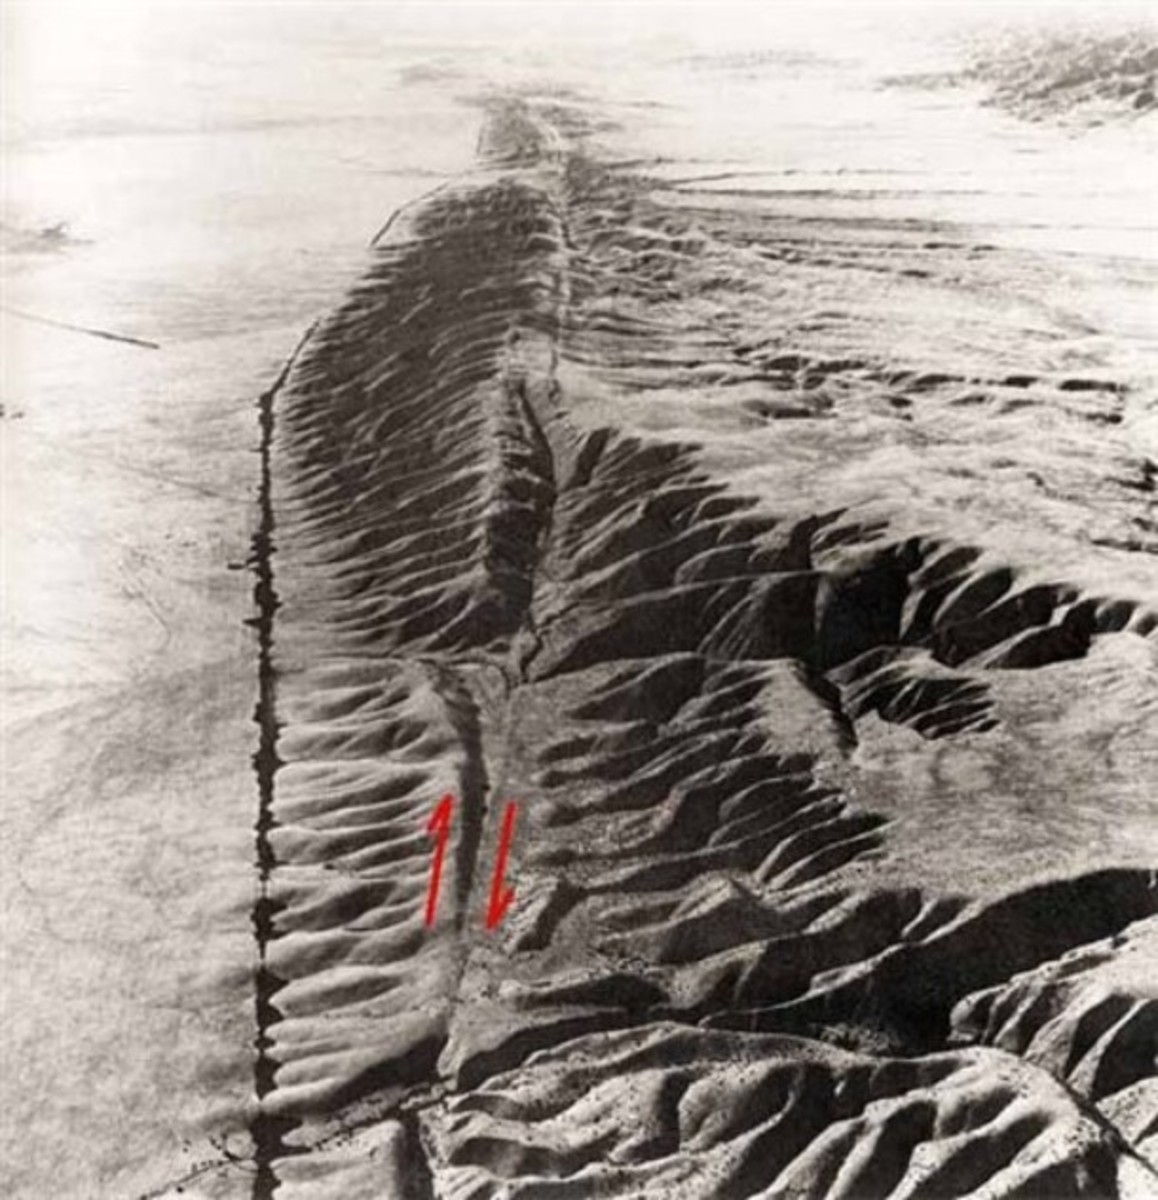 A 1960's aerial photo from the USGS showing a section of the San Andreas Fault that was moved 30 feet in the 1857 quake